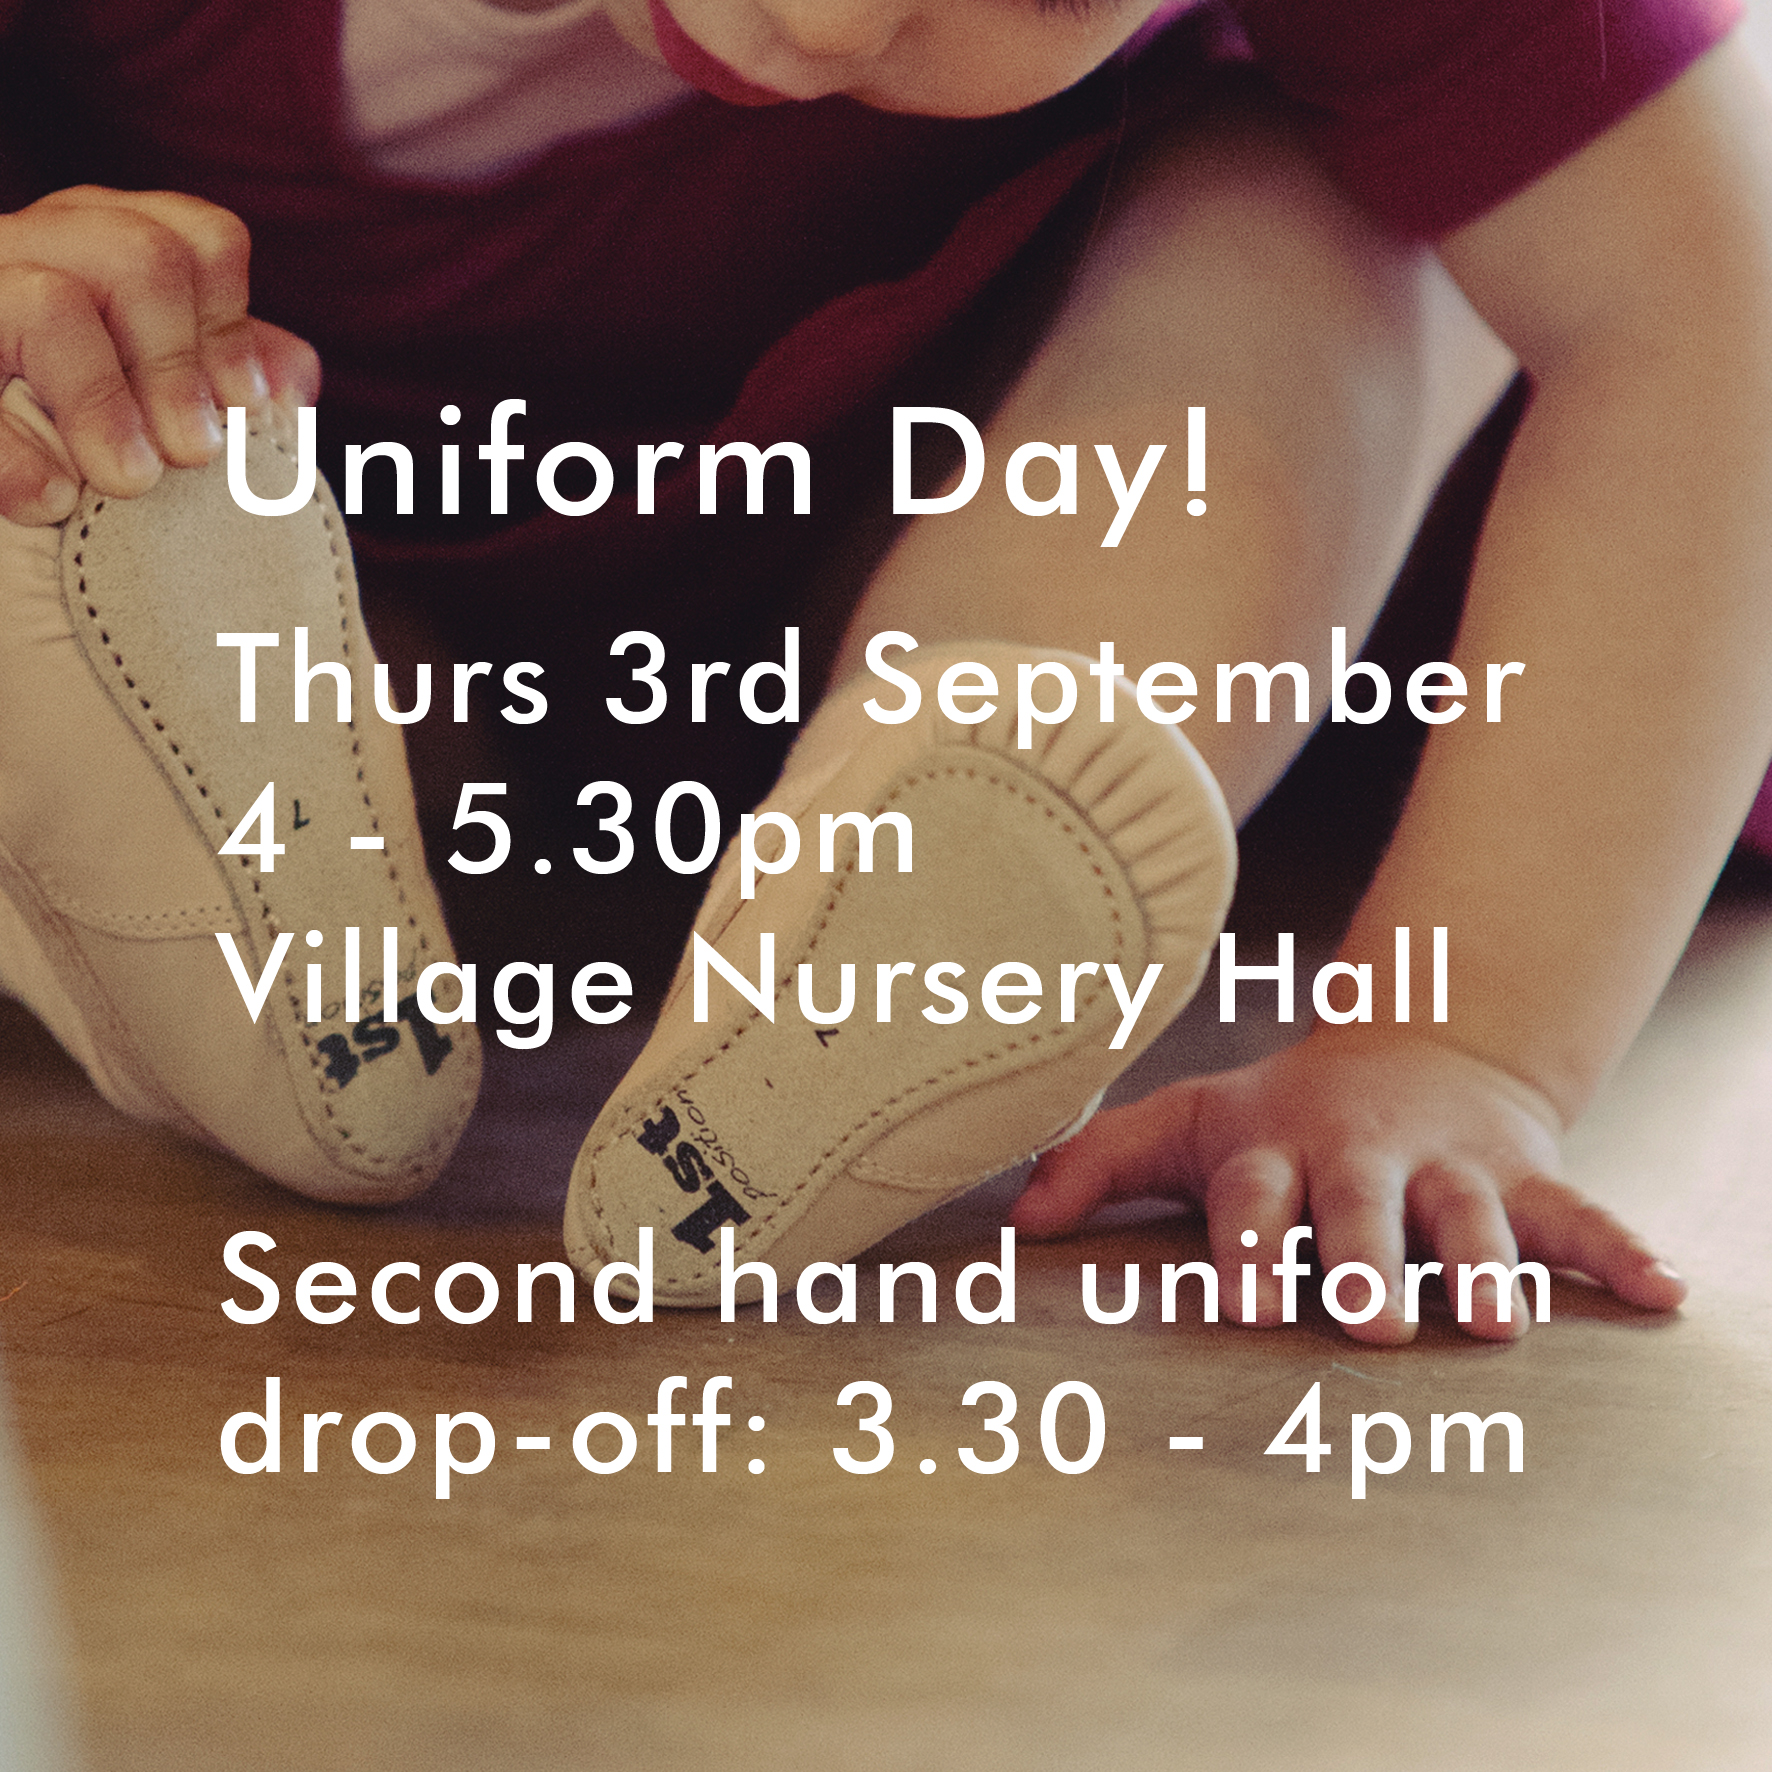 uniform day 2015 clifford studios barnes south west london